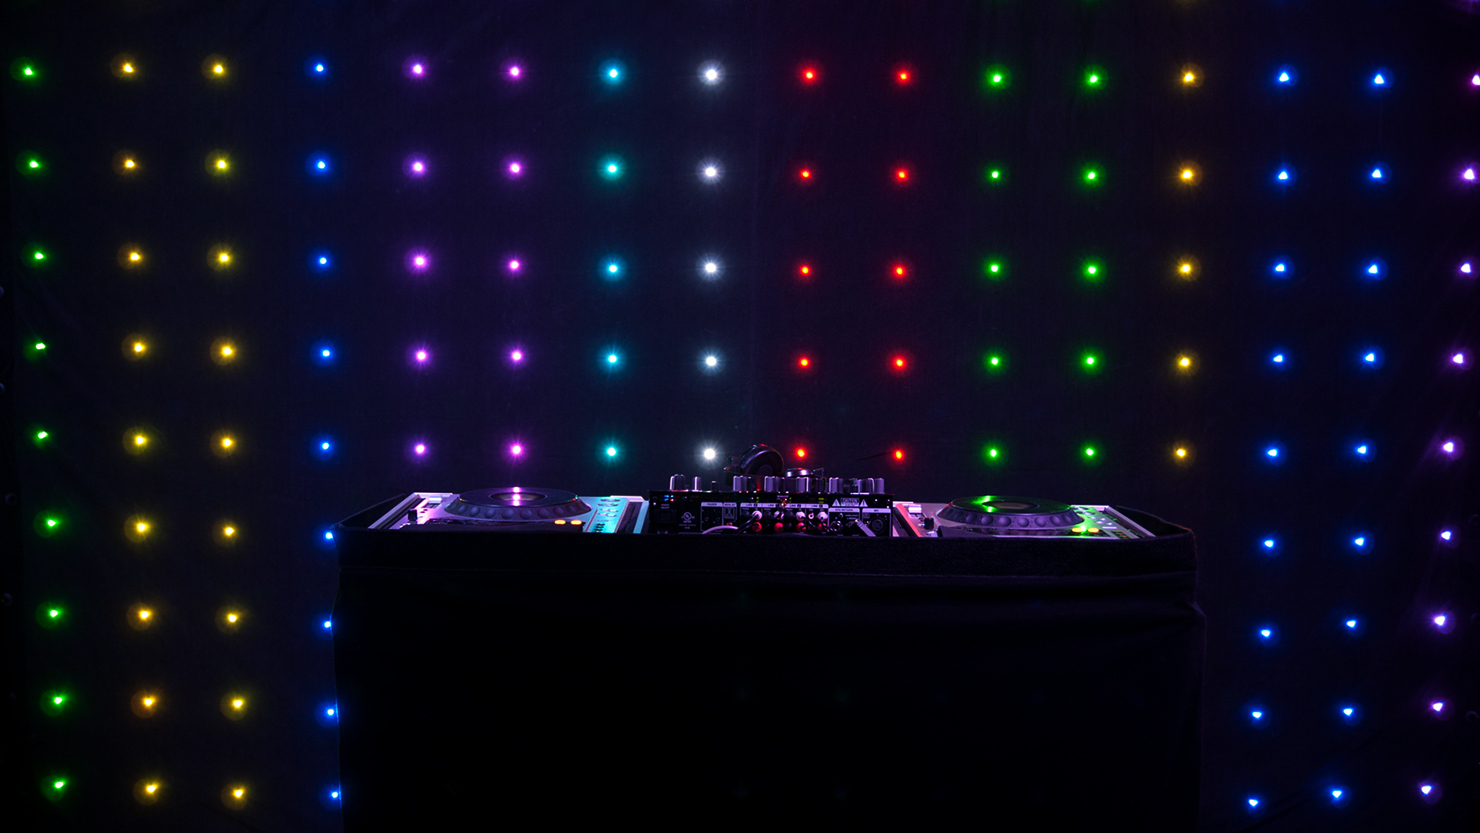 Motiondrape Led Chauvet Dj